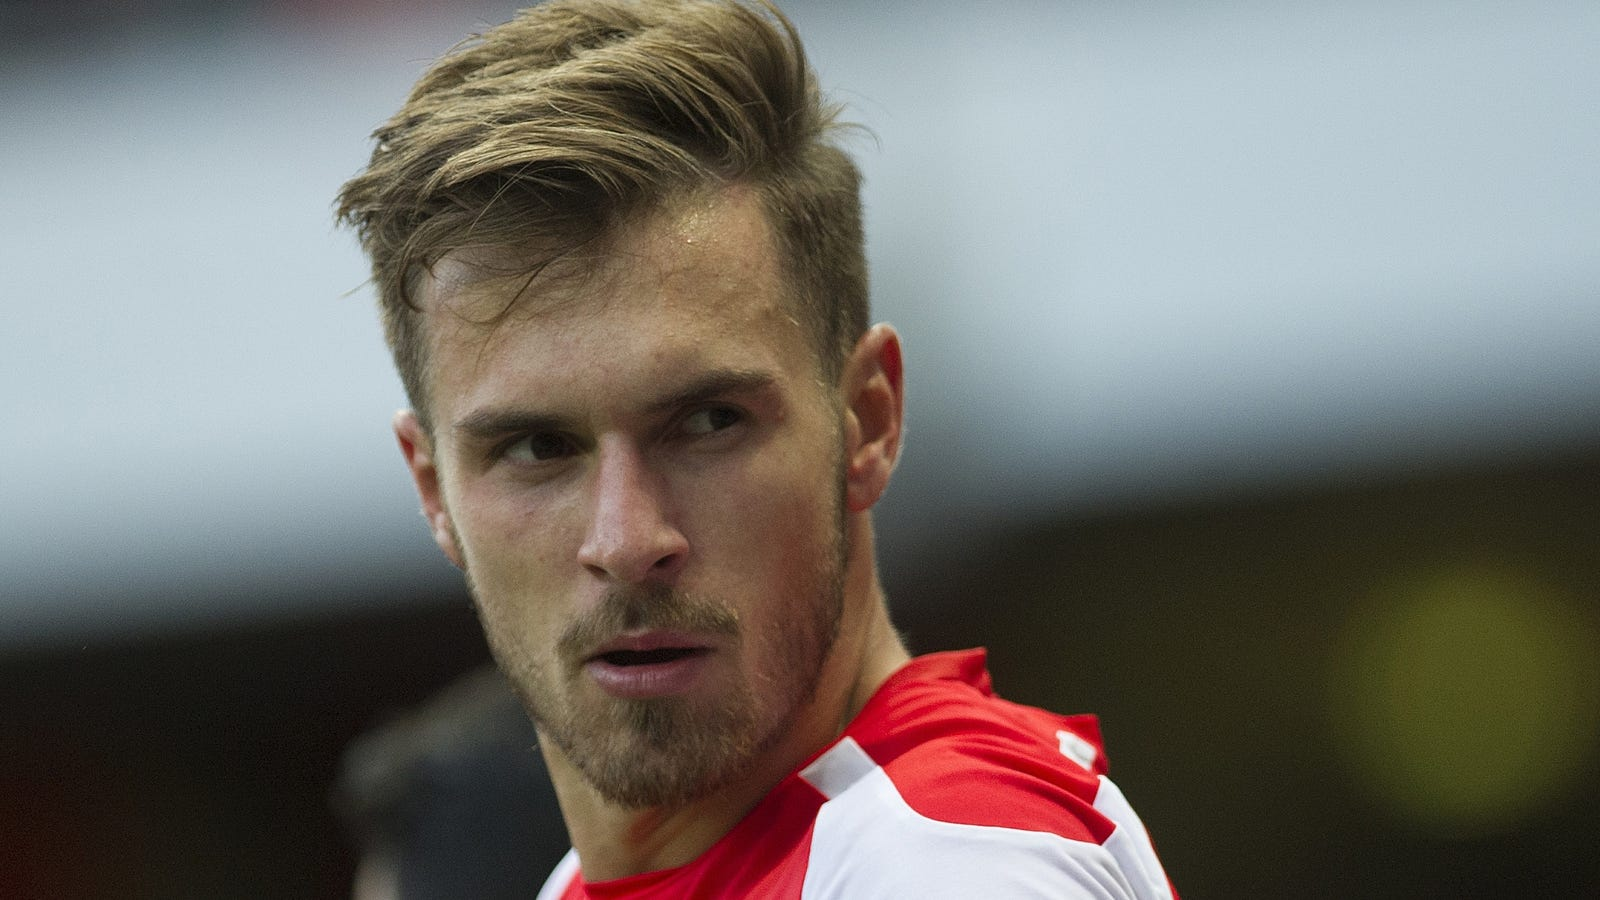 Ramsey: Aaron Ramsey Can't Stop Killing Famous People